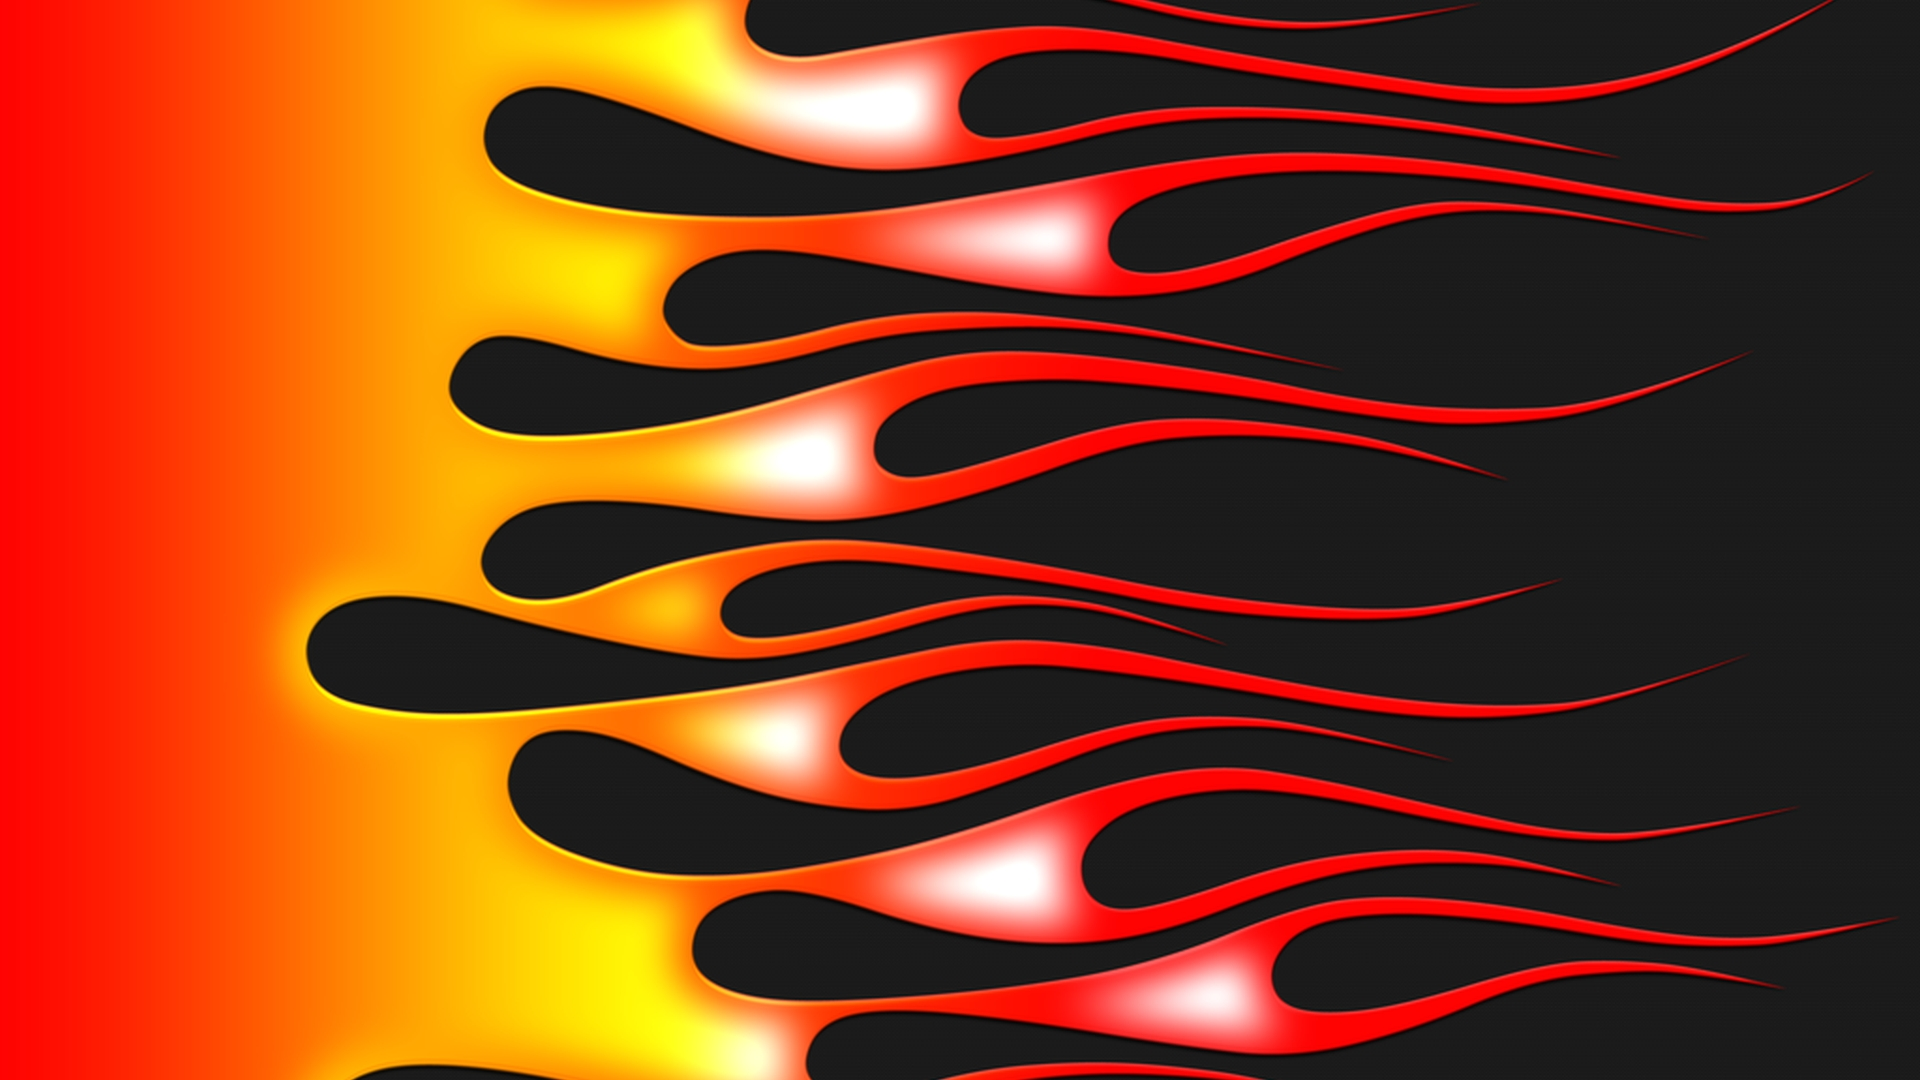 Flames - hot rod on carbon - widescreen by jbensch